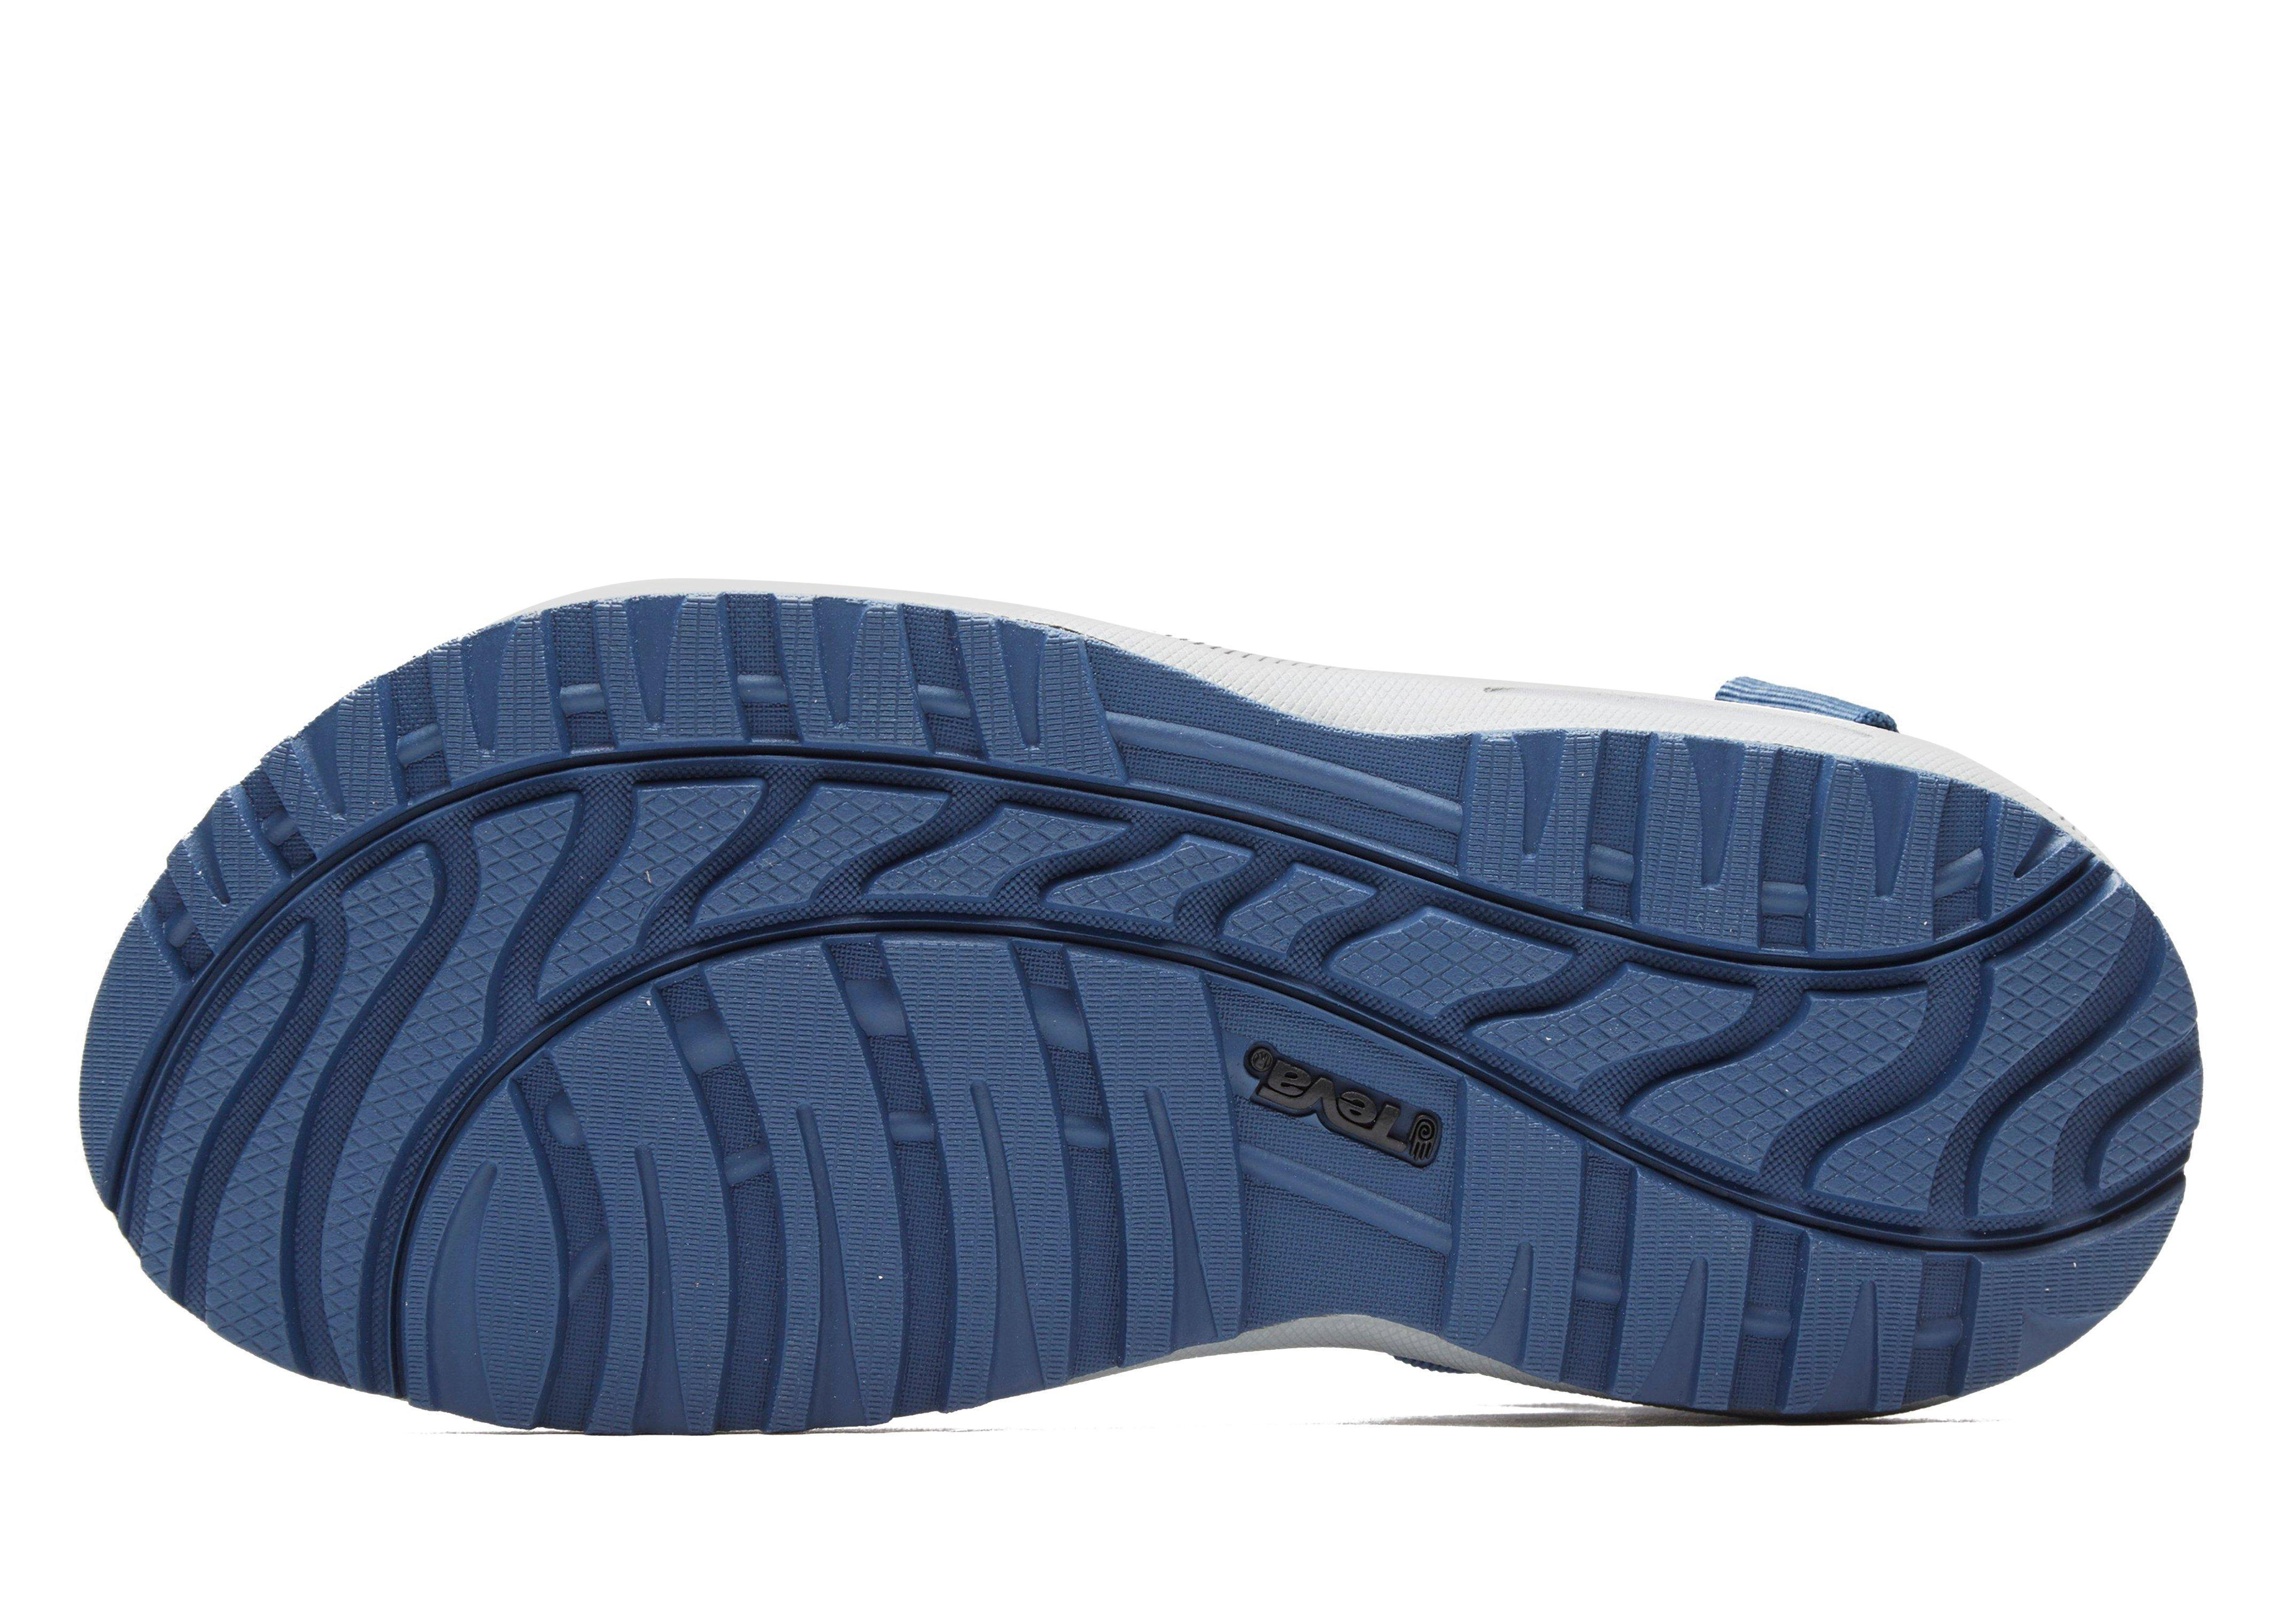 6a5adb194c32 Teva Winsted Sandals in Blue for Men - Lyst